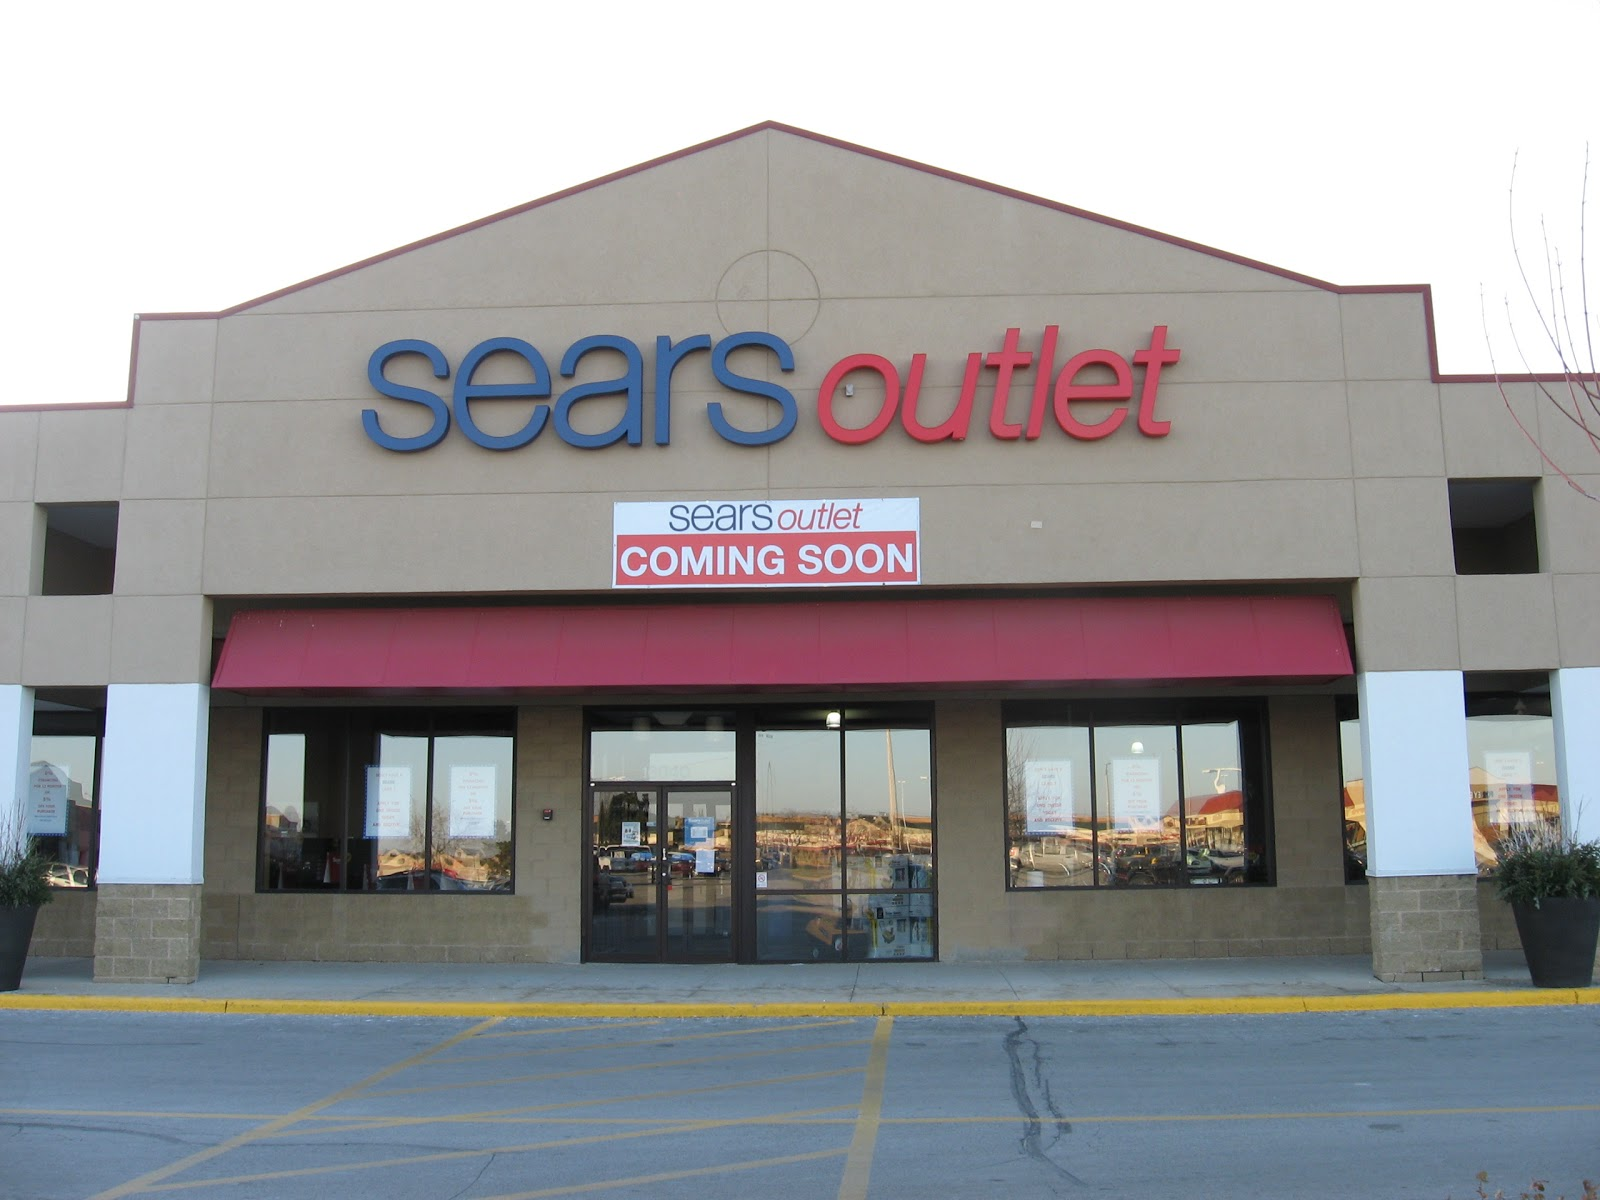 Dec 06,  · Company Overview. Sears Outlet Stores, L.L.C. was incorporated in and is based in Hoffman Estates, Illinois. The company operates as a subsidiary of Sears Hometown and Outlet Location: Beverly Road Hoffman Estates, IL United States.